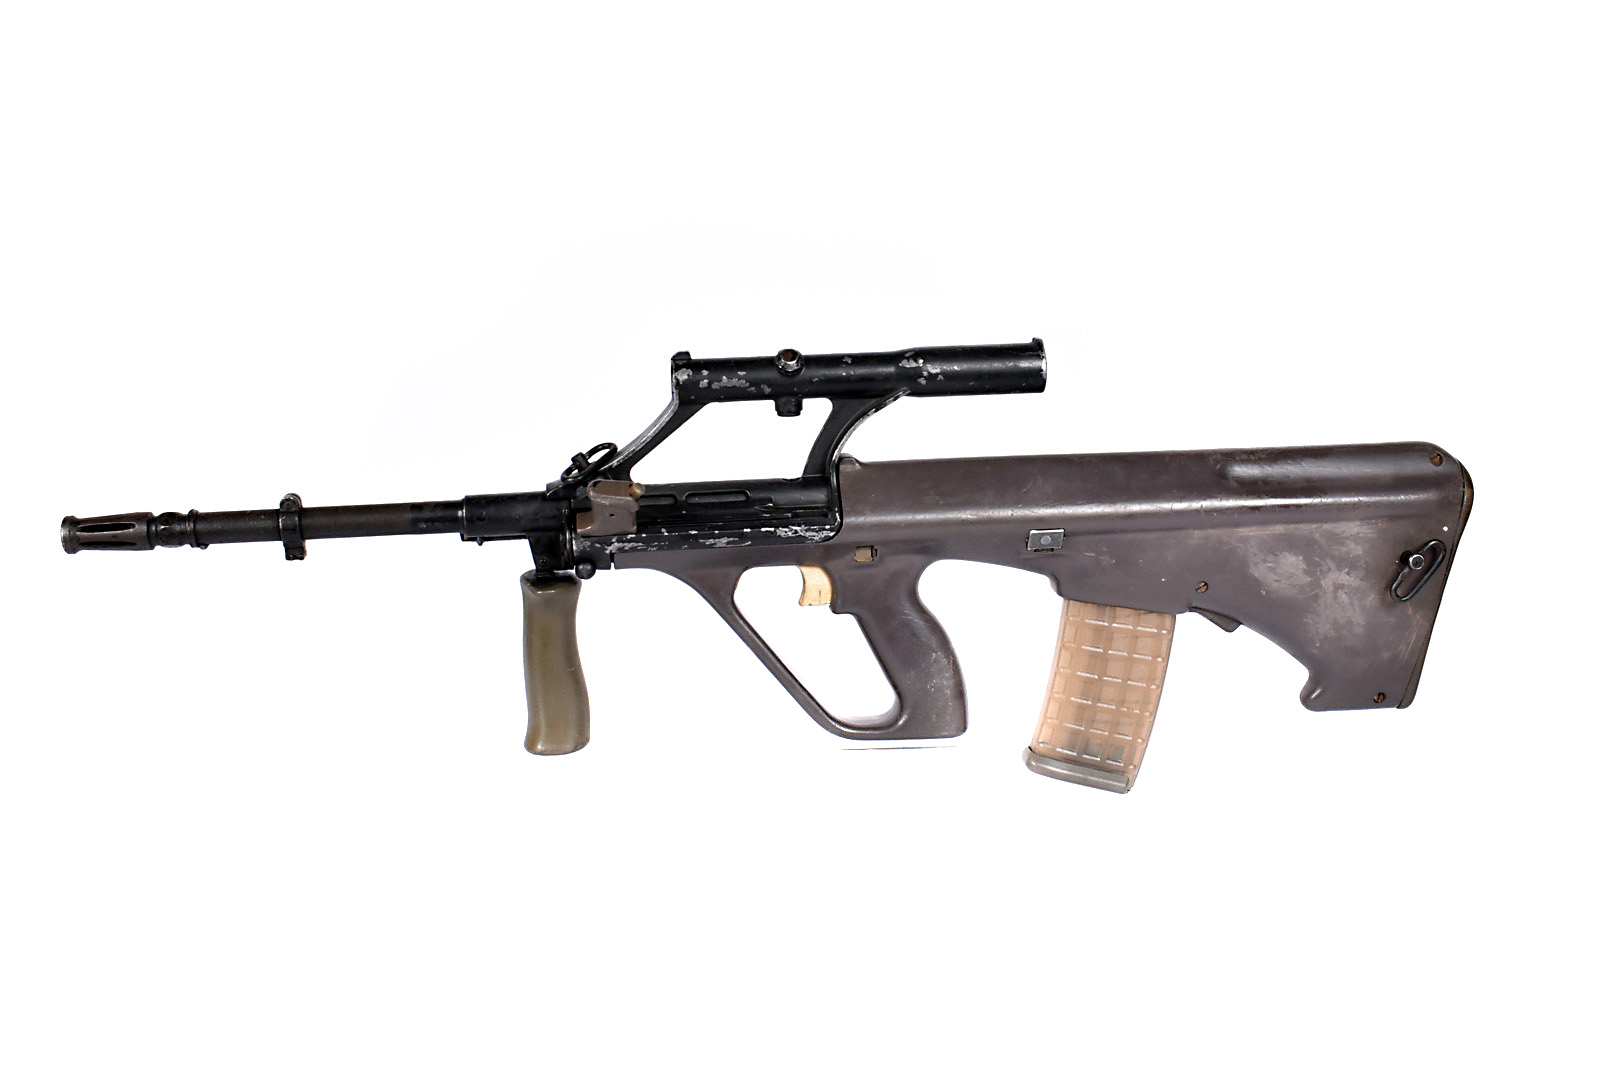 A deactivated Austrian Steyr AUG 5.56mm Assault Rifle, serial number M17523, in good deactivated